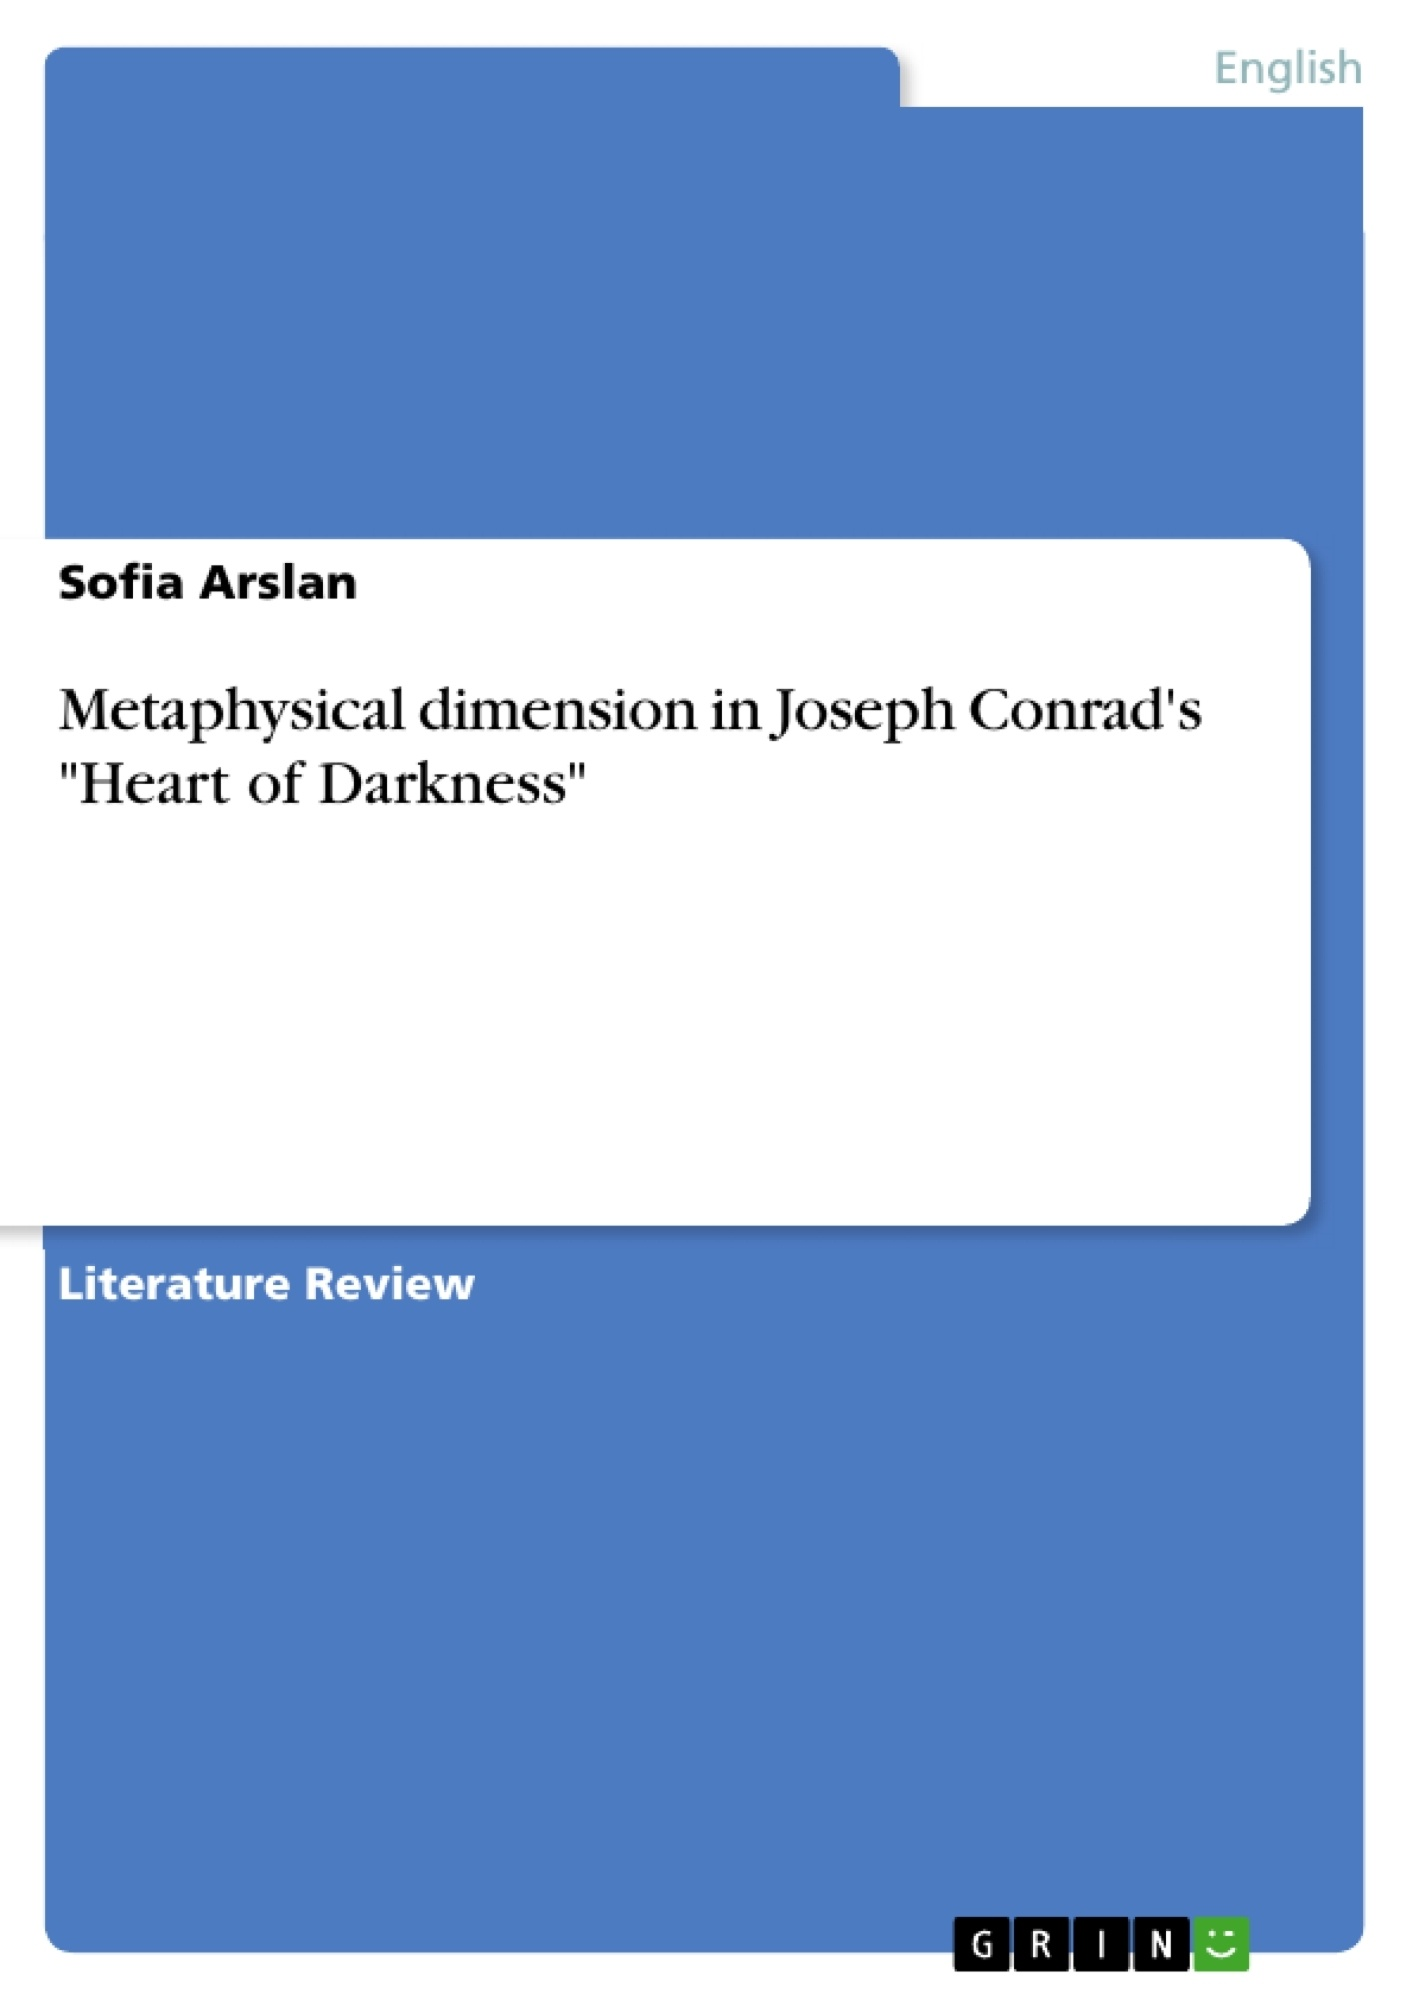 """Title: Metaphysical dimension in Joseph Conrad's """"Heart of Darkness"""""""